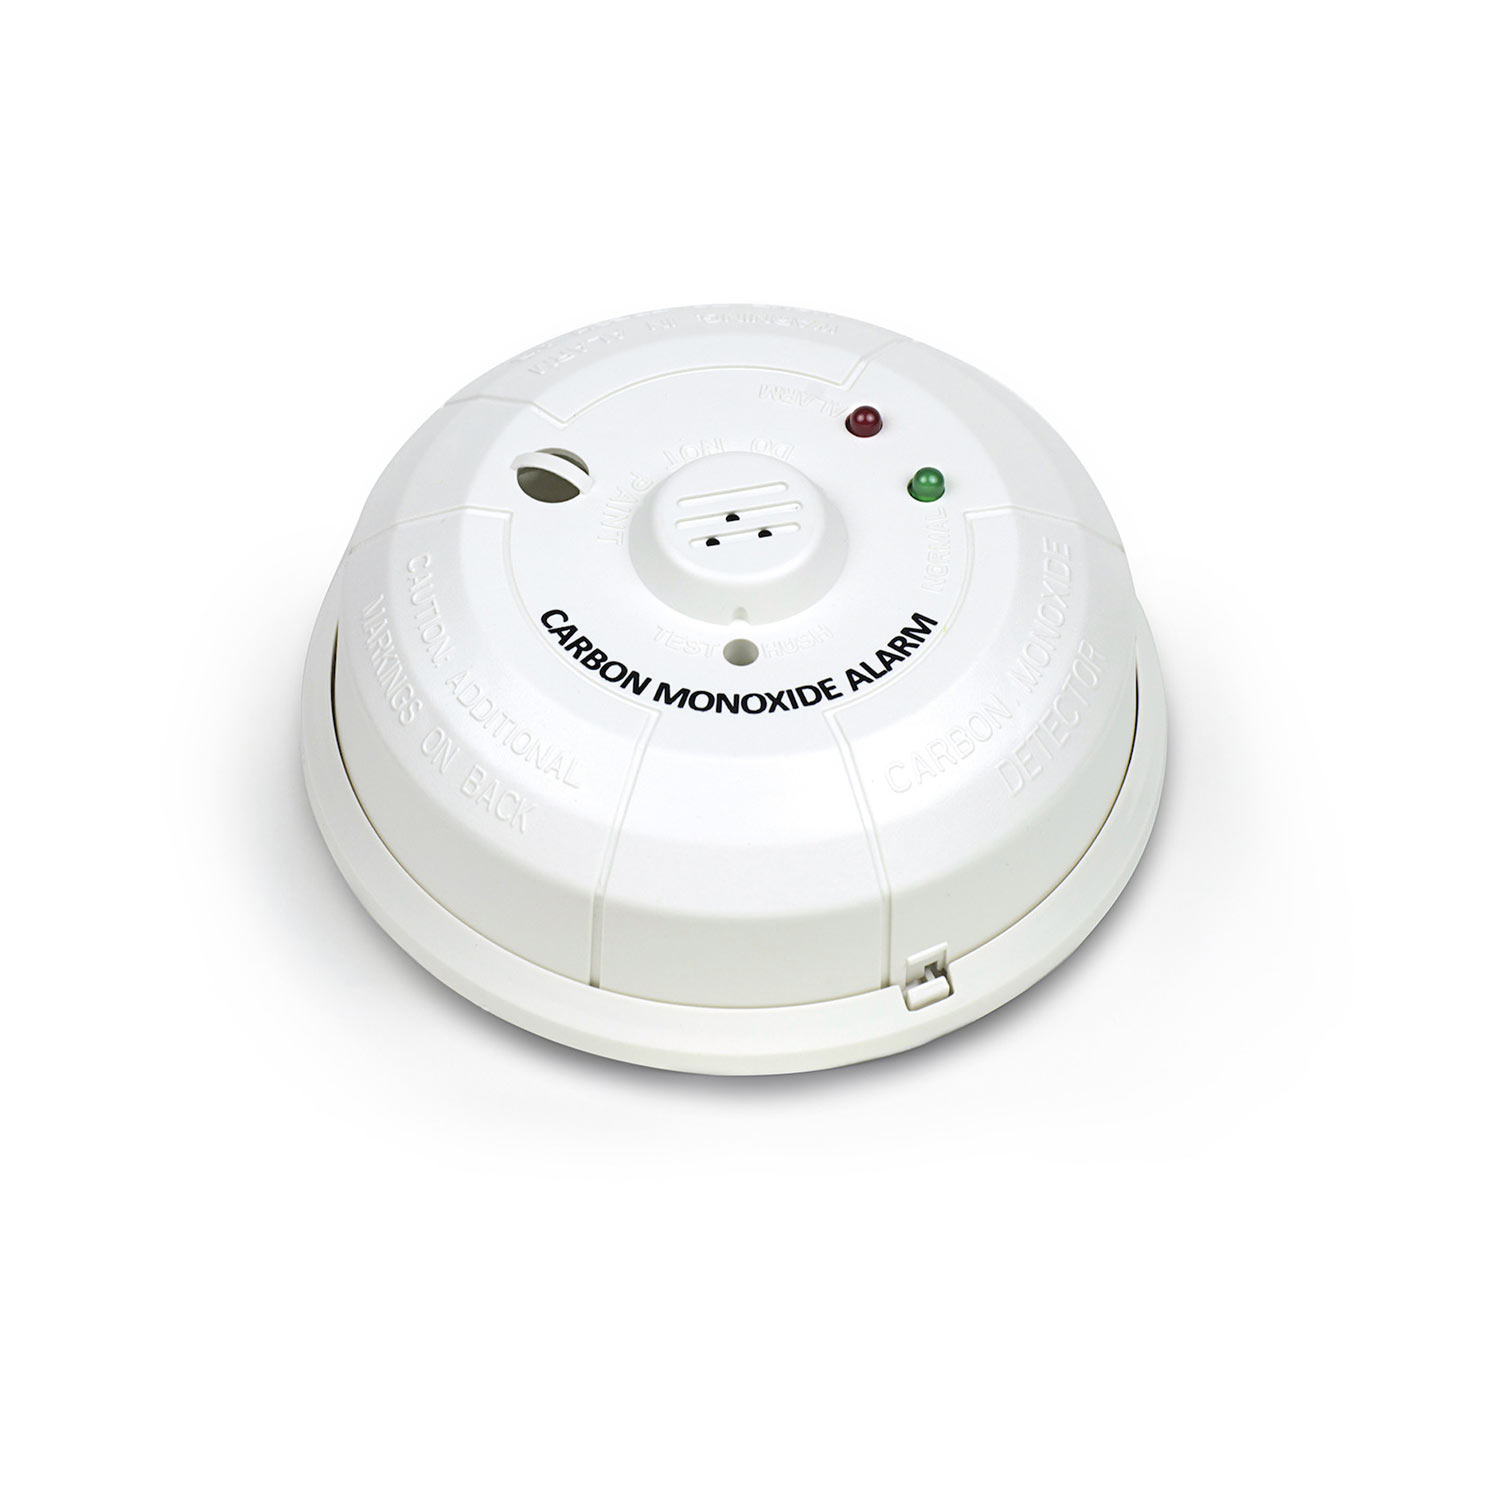 Medallion Series Wireless Carbon Monoxide Detector with Transmitter